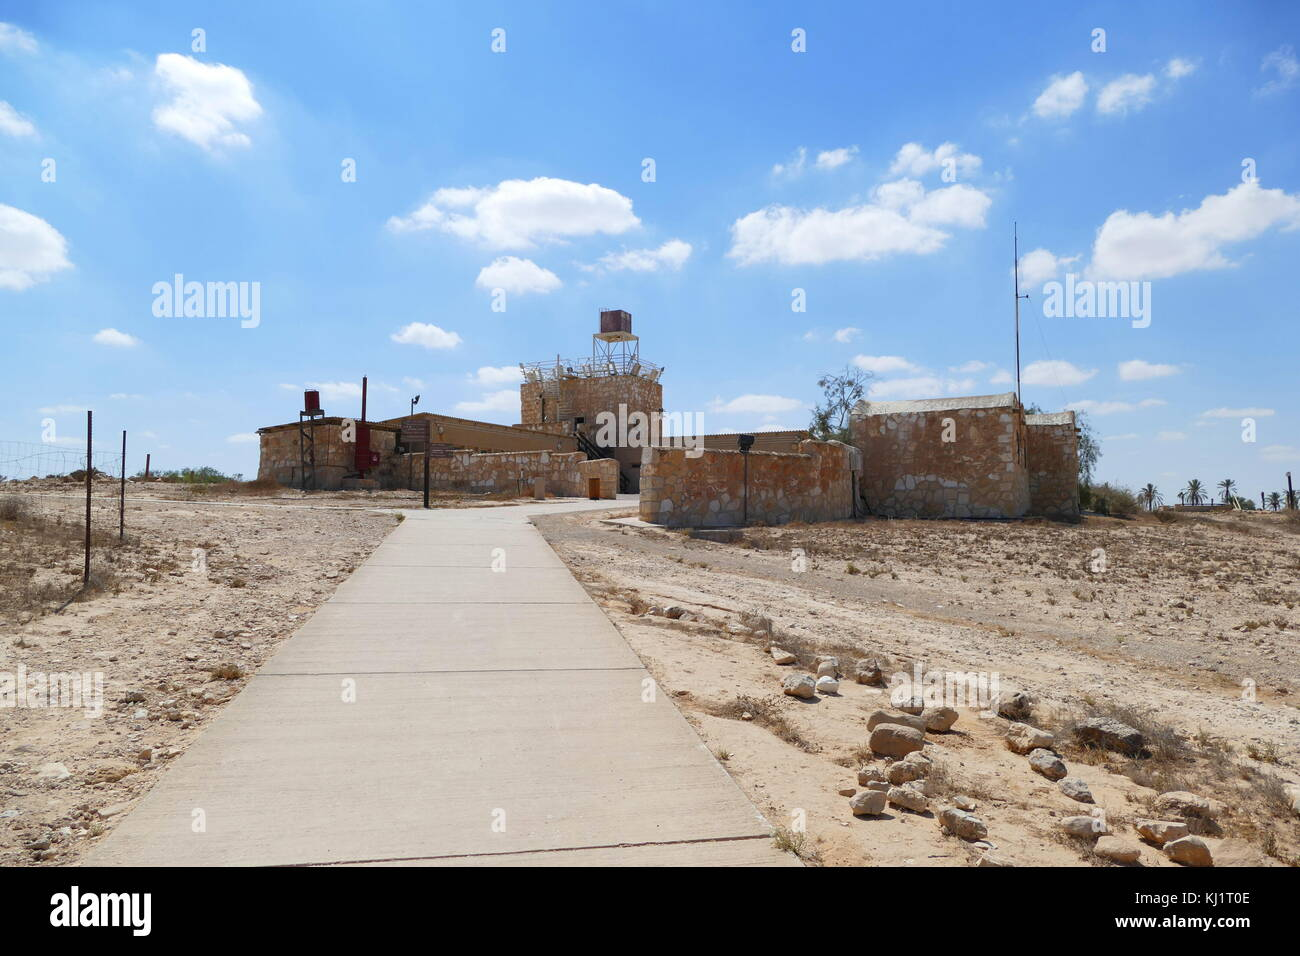 Old fortress at kibbutz Revivim, in the Negev desert in southern Israel. The community was formed in 1943 and during - Stock Image